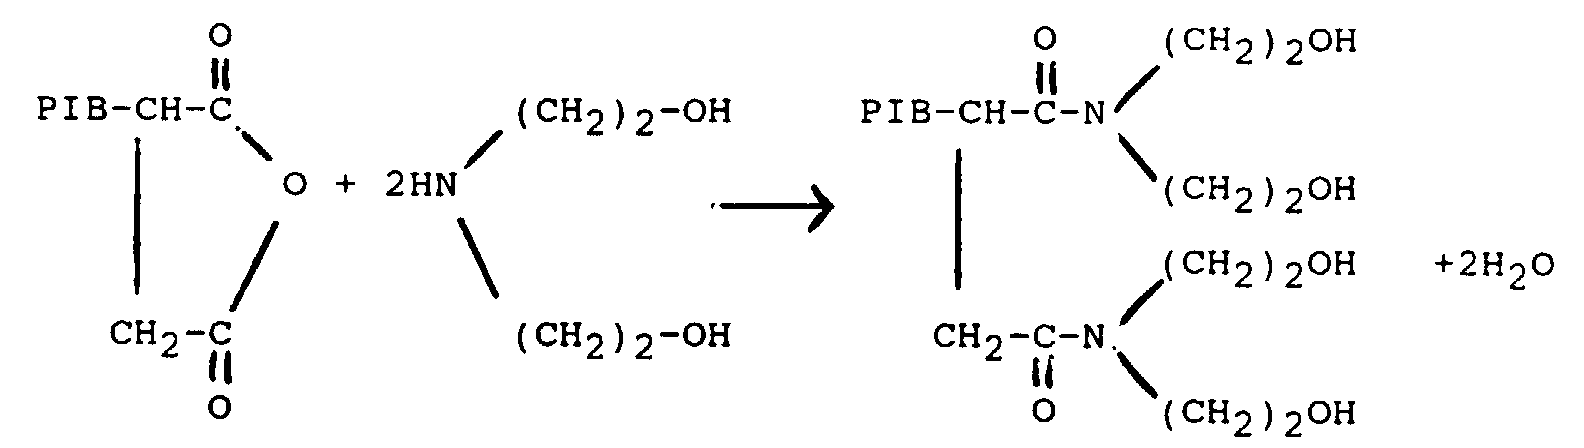 hydrocarbon derivative amines Hydrocarbon derivatives are compounds that are made primarily of carbon and hydrogen atoms with specific groups of atoms attached these specific groups of atoms are called functional groups hydrocarbon derivatives contain at least one element that is electronegative electronegativity is the ability of an element to draw electrons to itself.